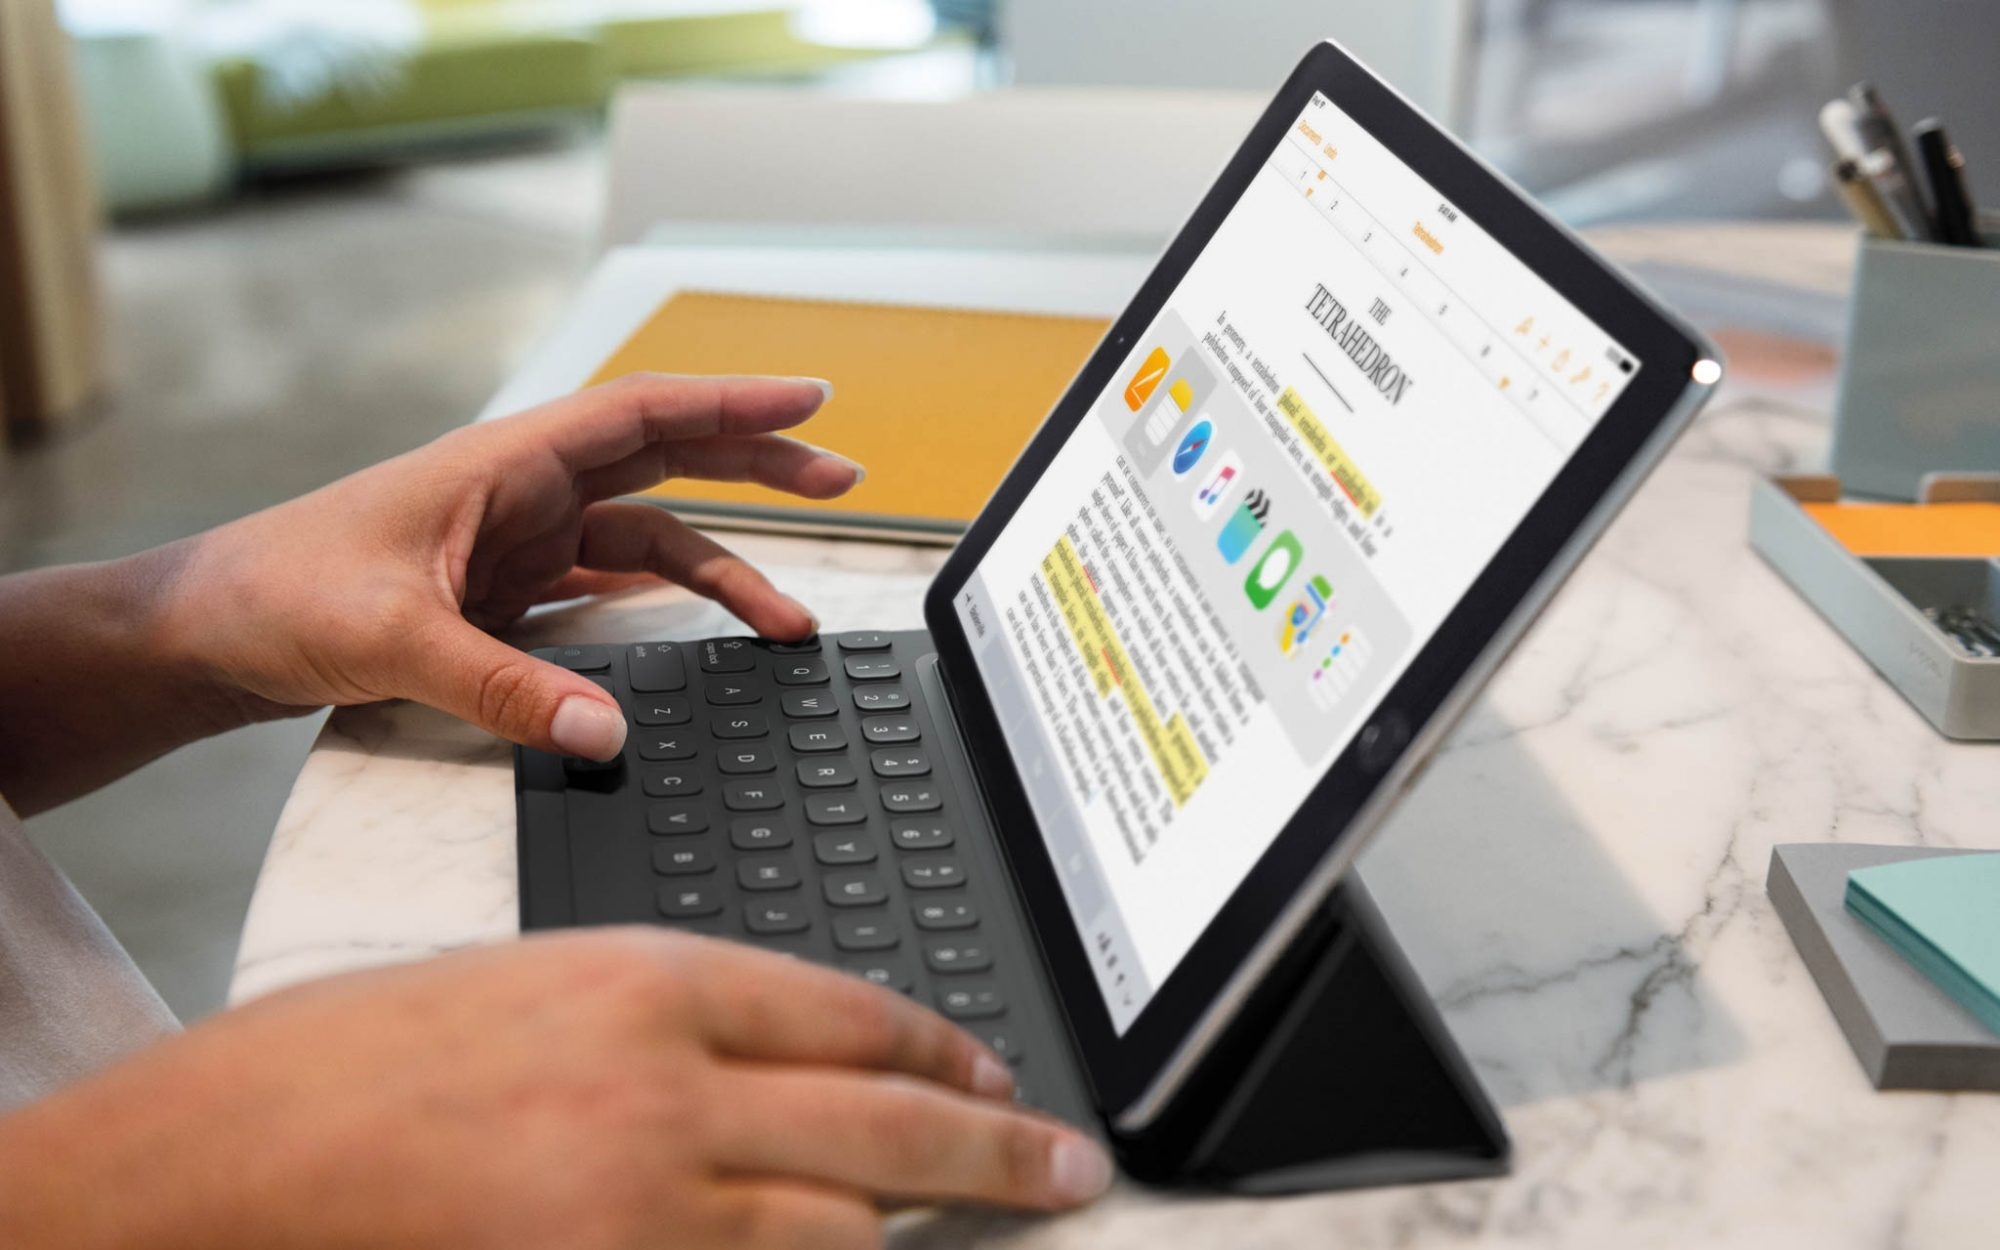 9.7-inch iPad Pro with Smart Keyboard